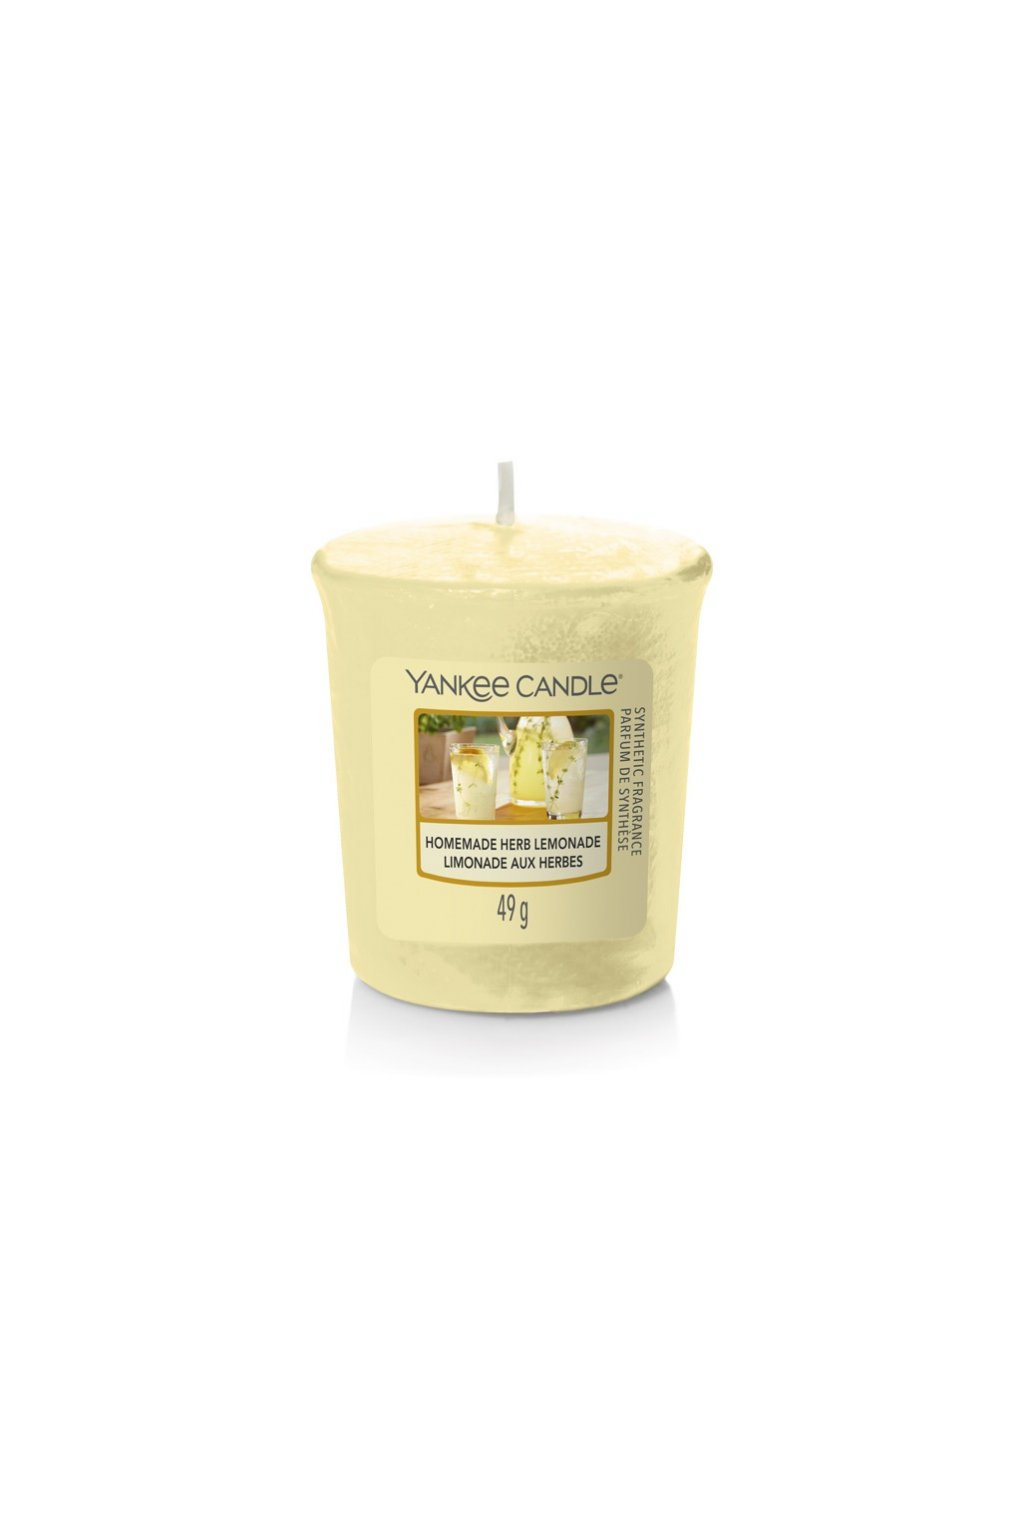 Yankee Candle Homemade Herb Lemonade 49g